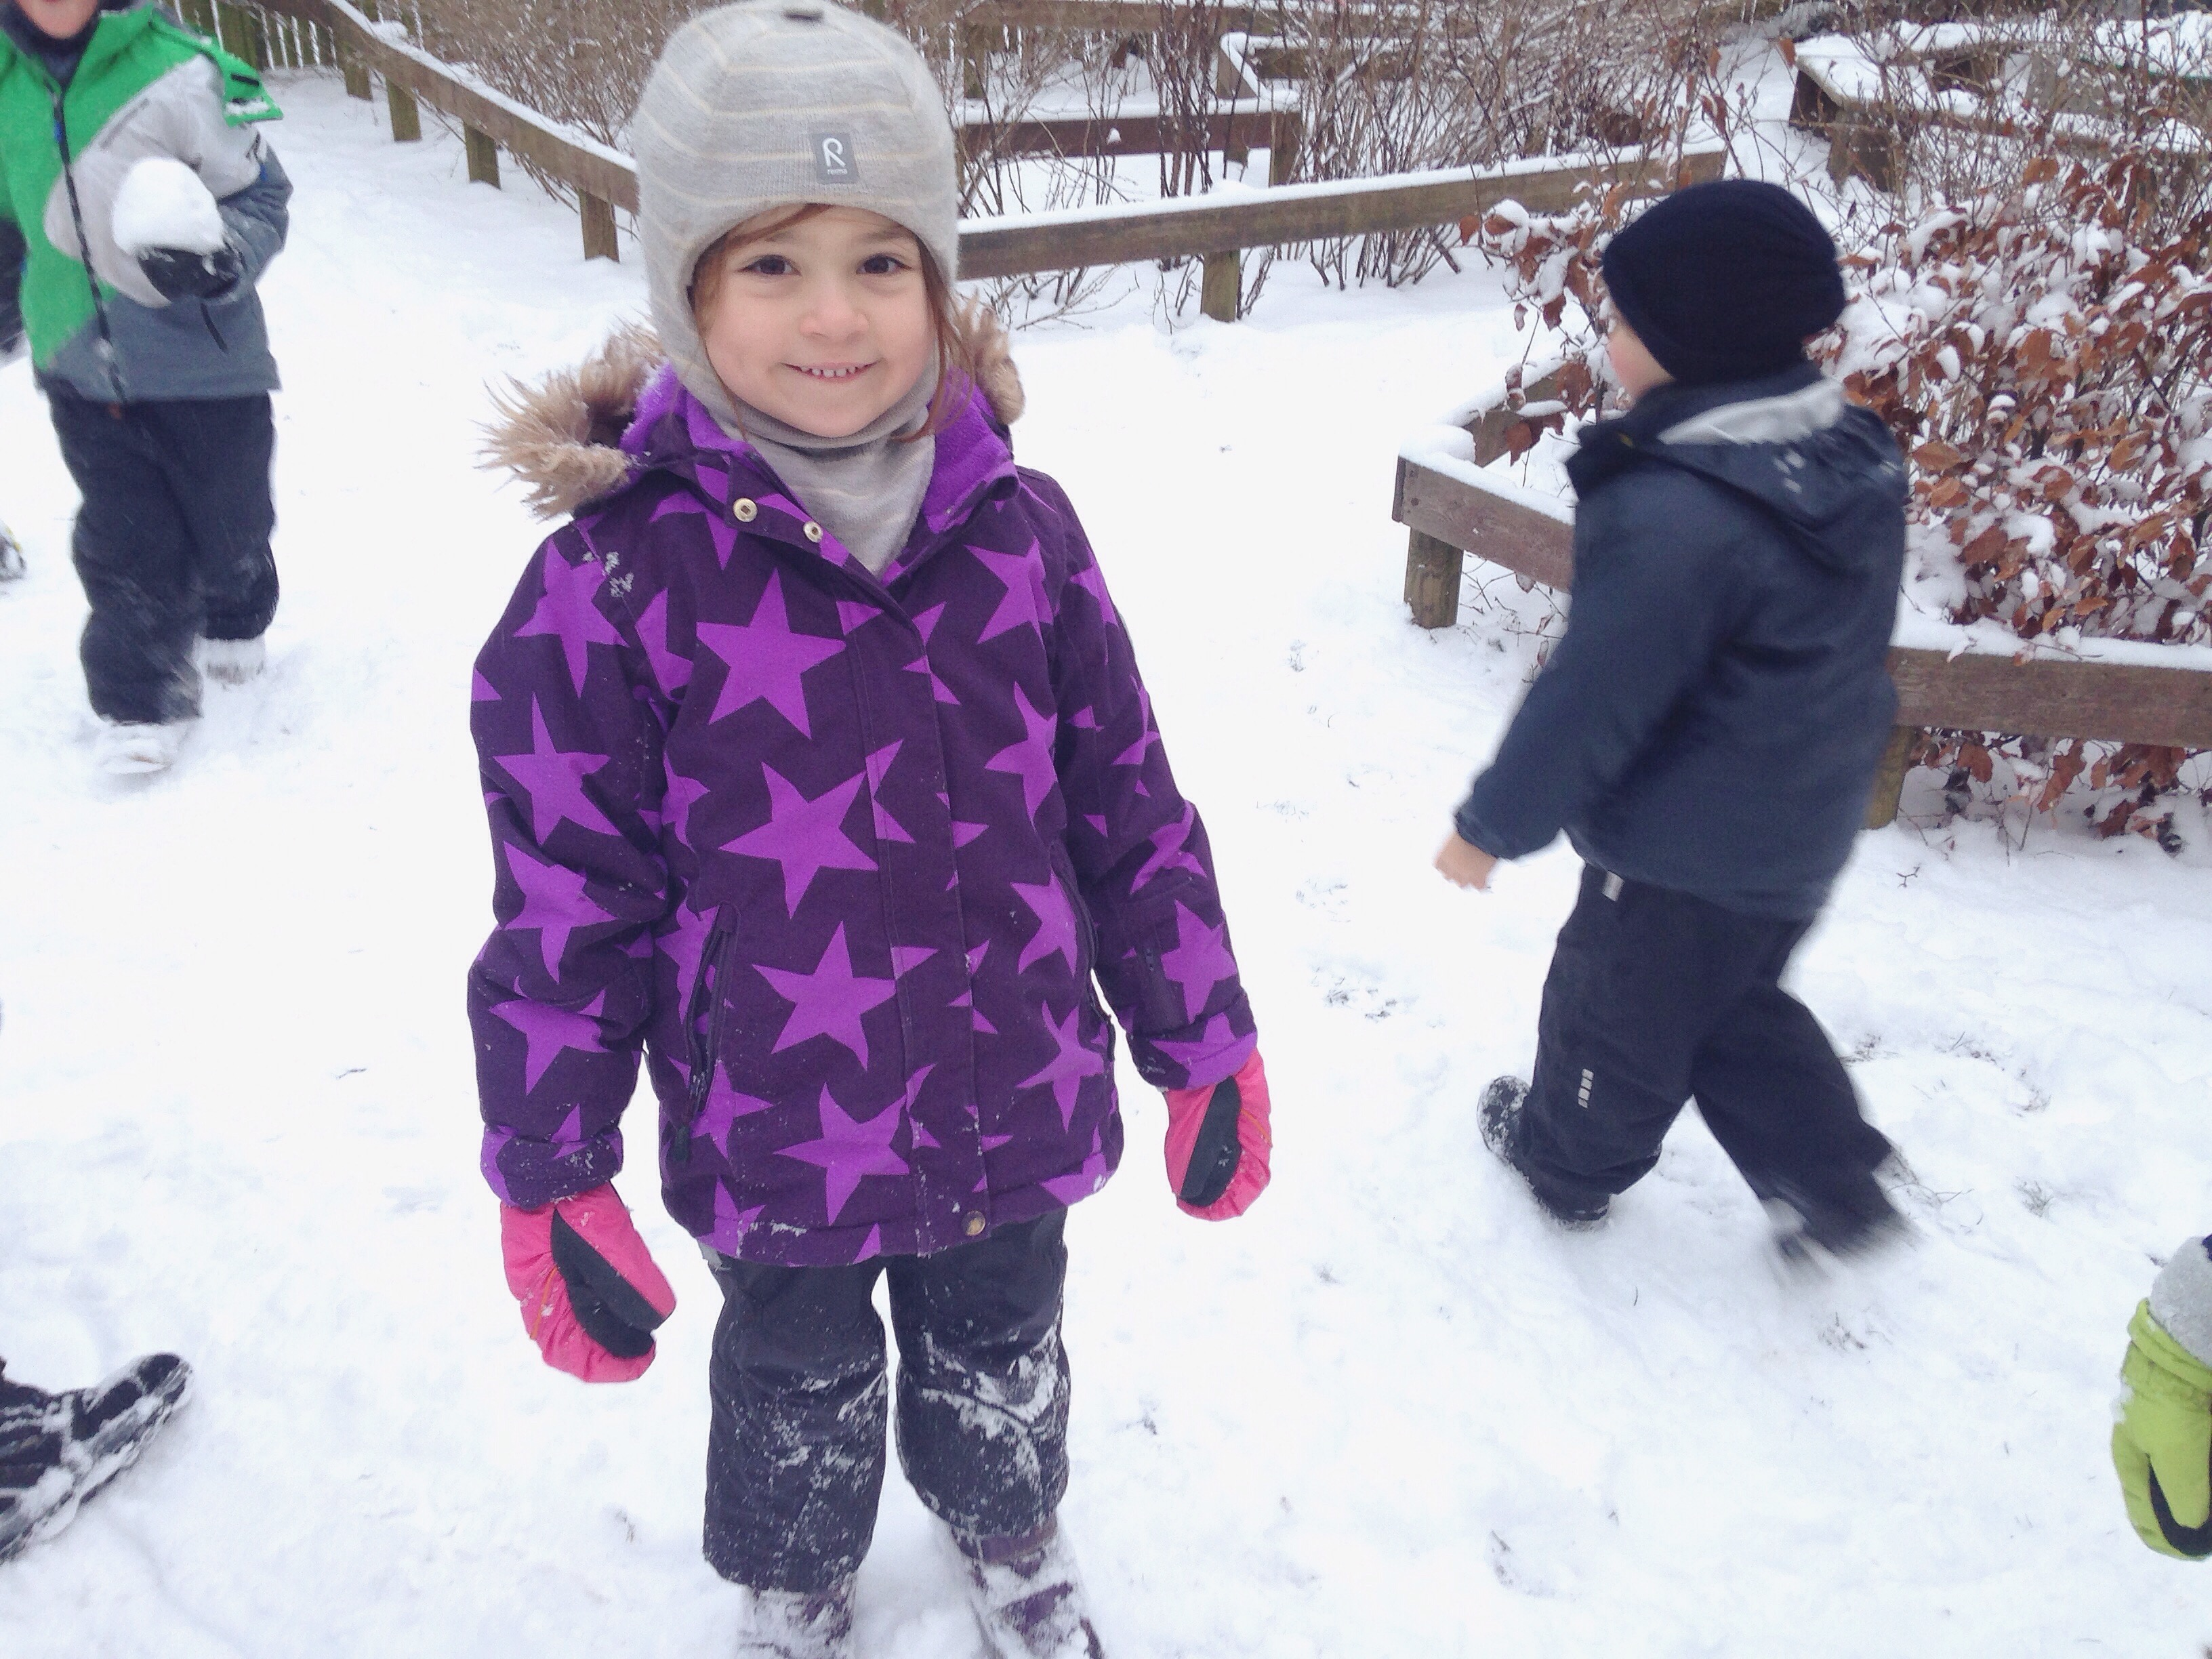 Snow in Copenhagen and Denmark doesn't mean that school is cancelled - it means that schools head outside! Out and about in the snow with my daughter's forest school.